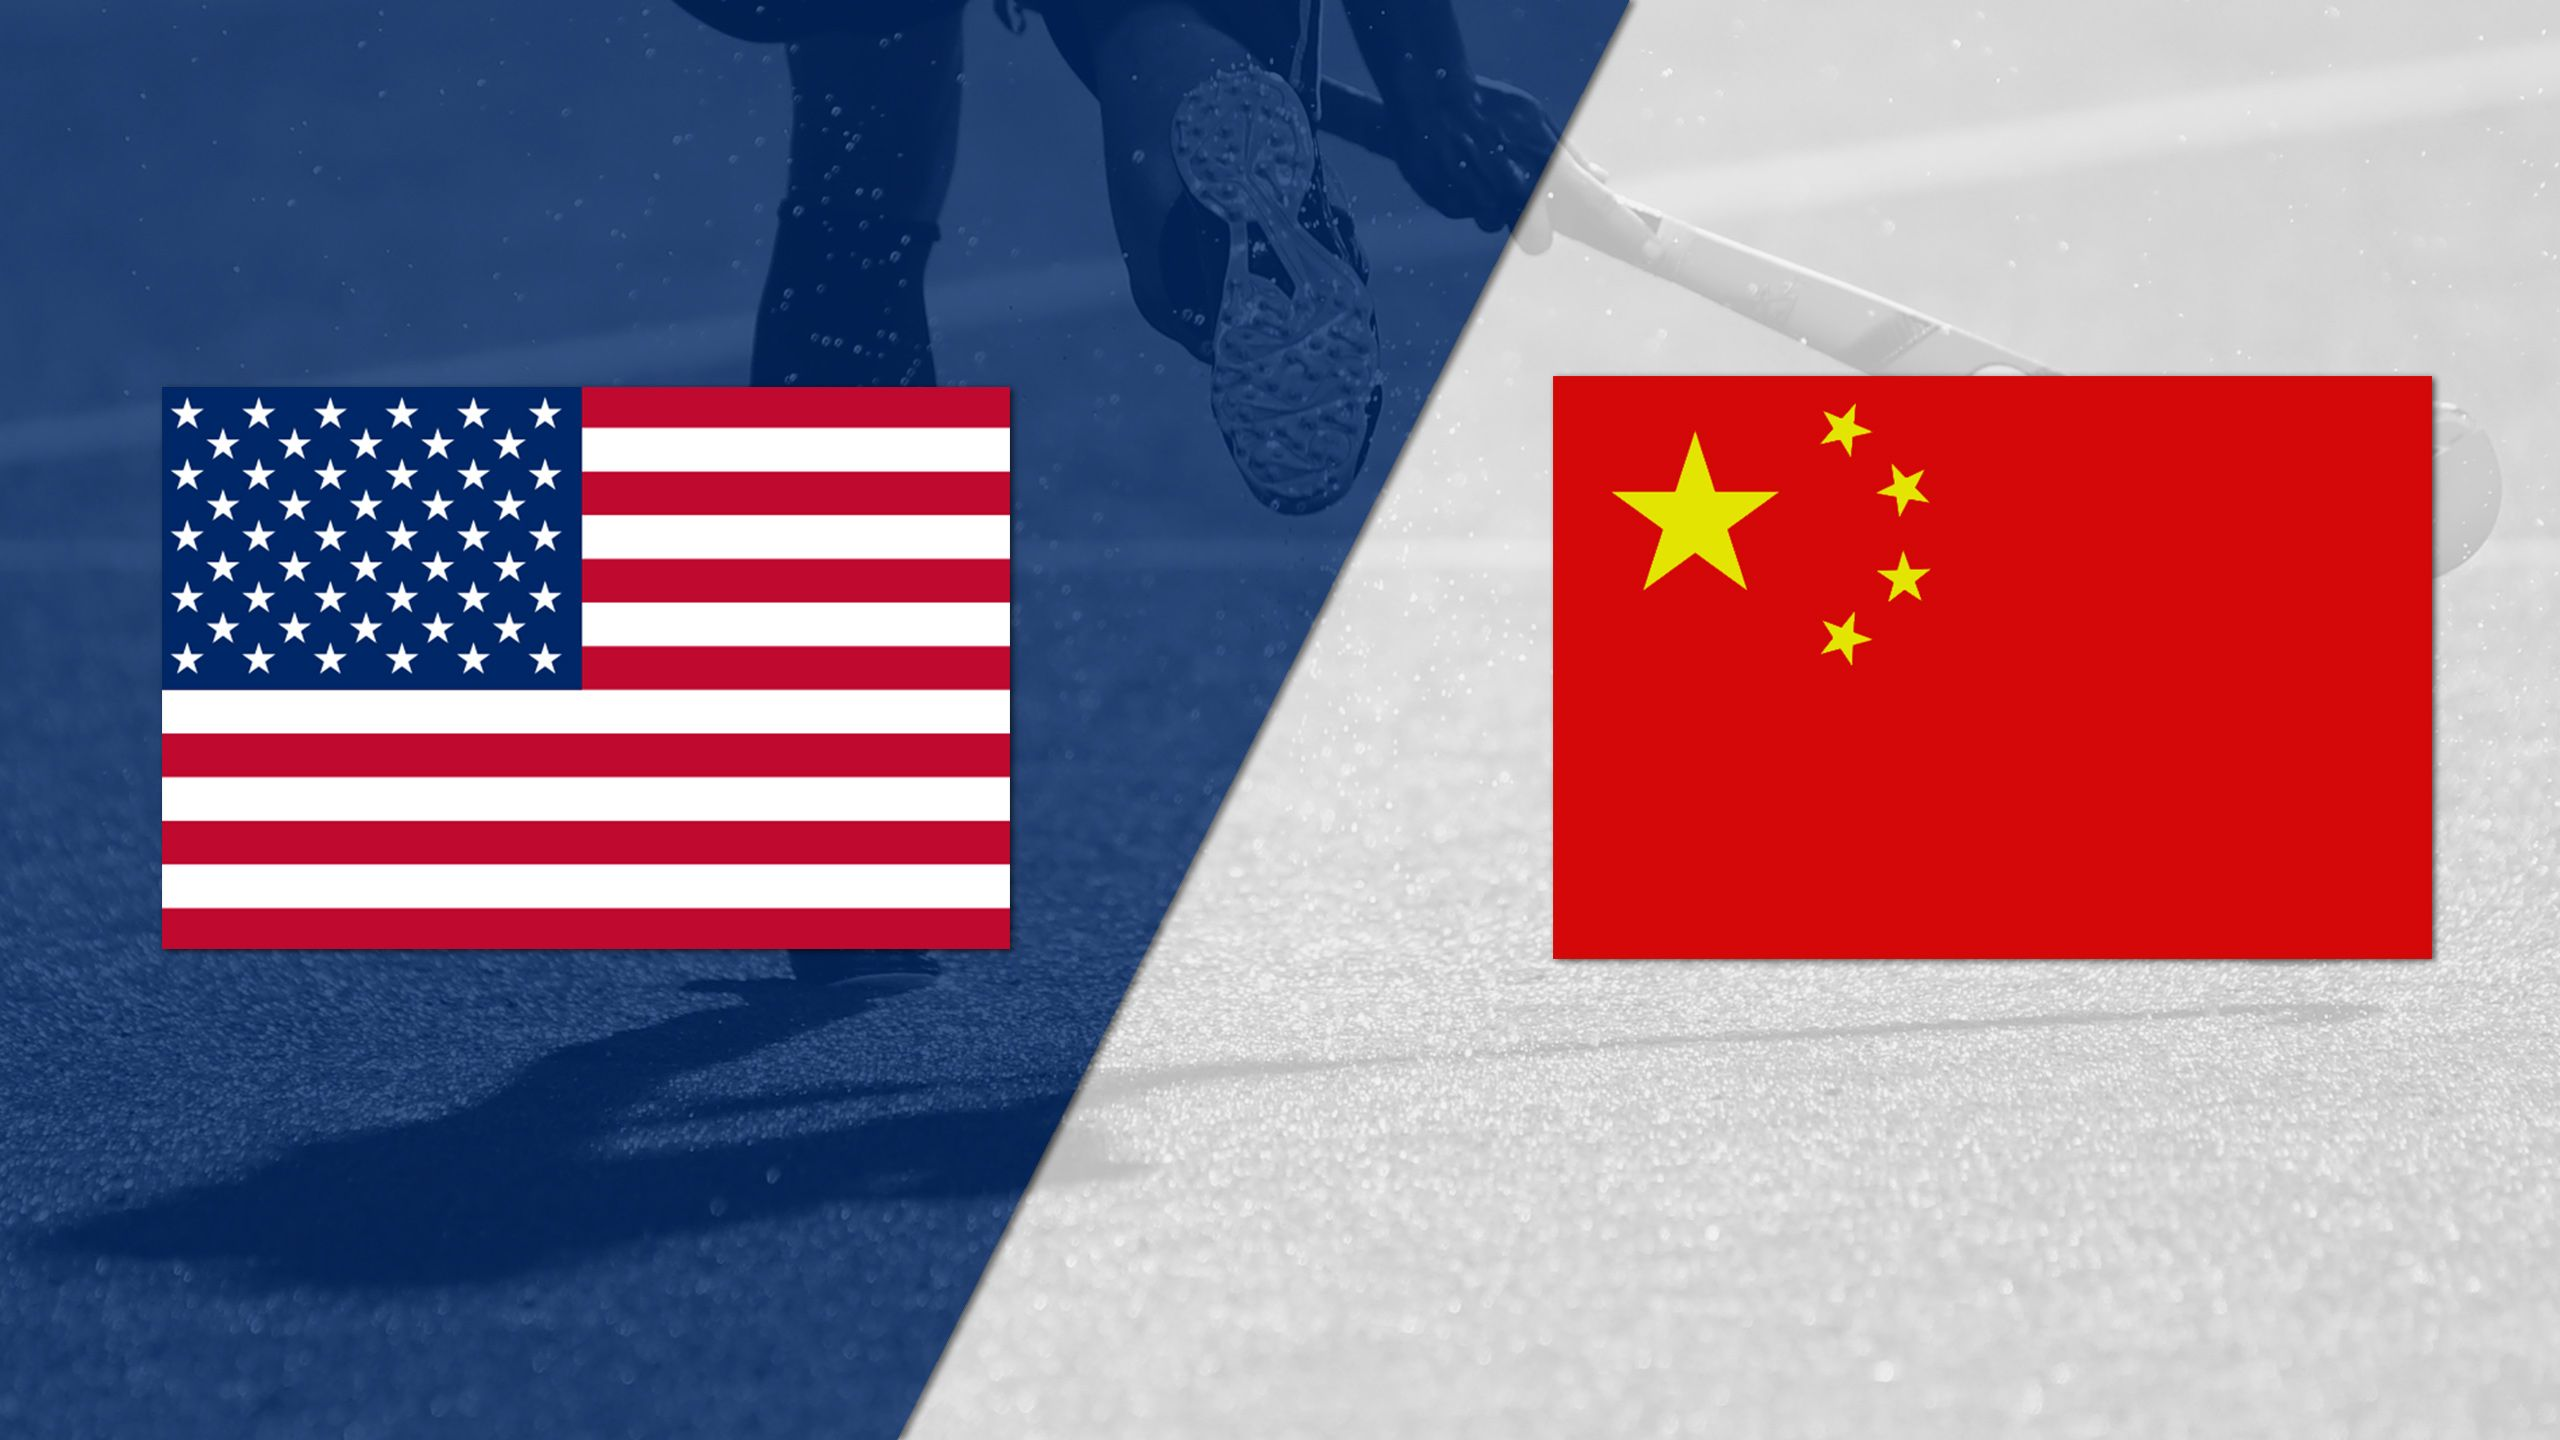 United States vs. China (Women's FIH World League)